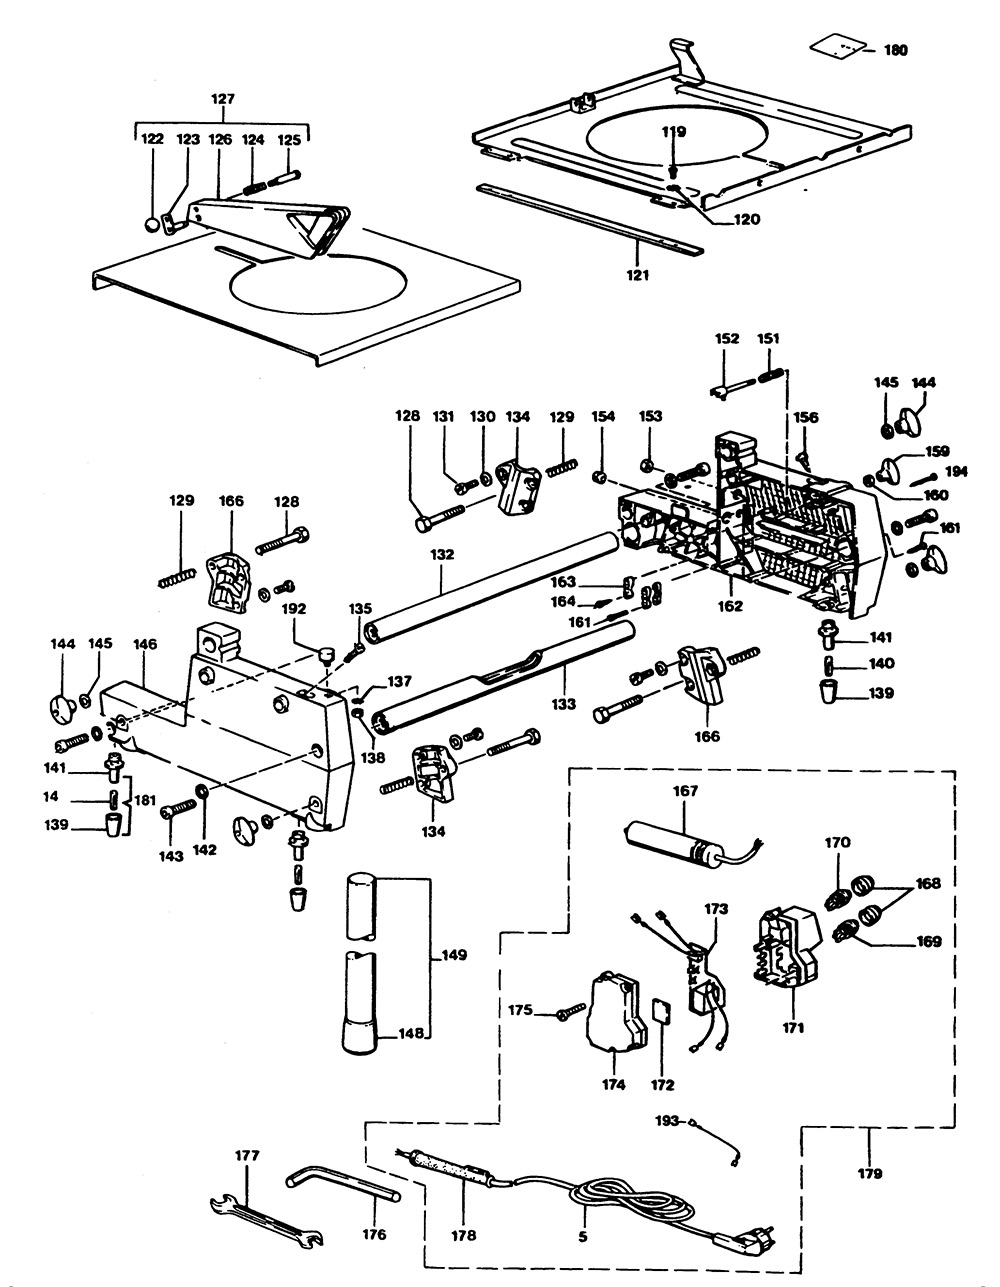 Makita table saw wiring image collections wiring table and diagram makita table saw wiring diagram image collections wiring table and makita table saw wiring images wiring keyboard keysfo Gallery